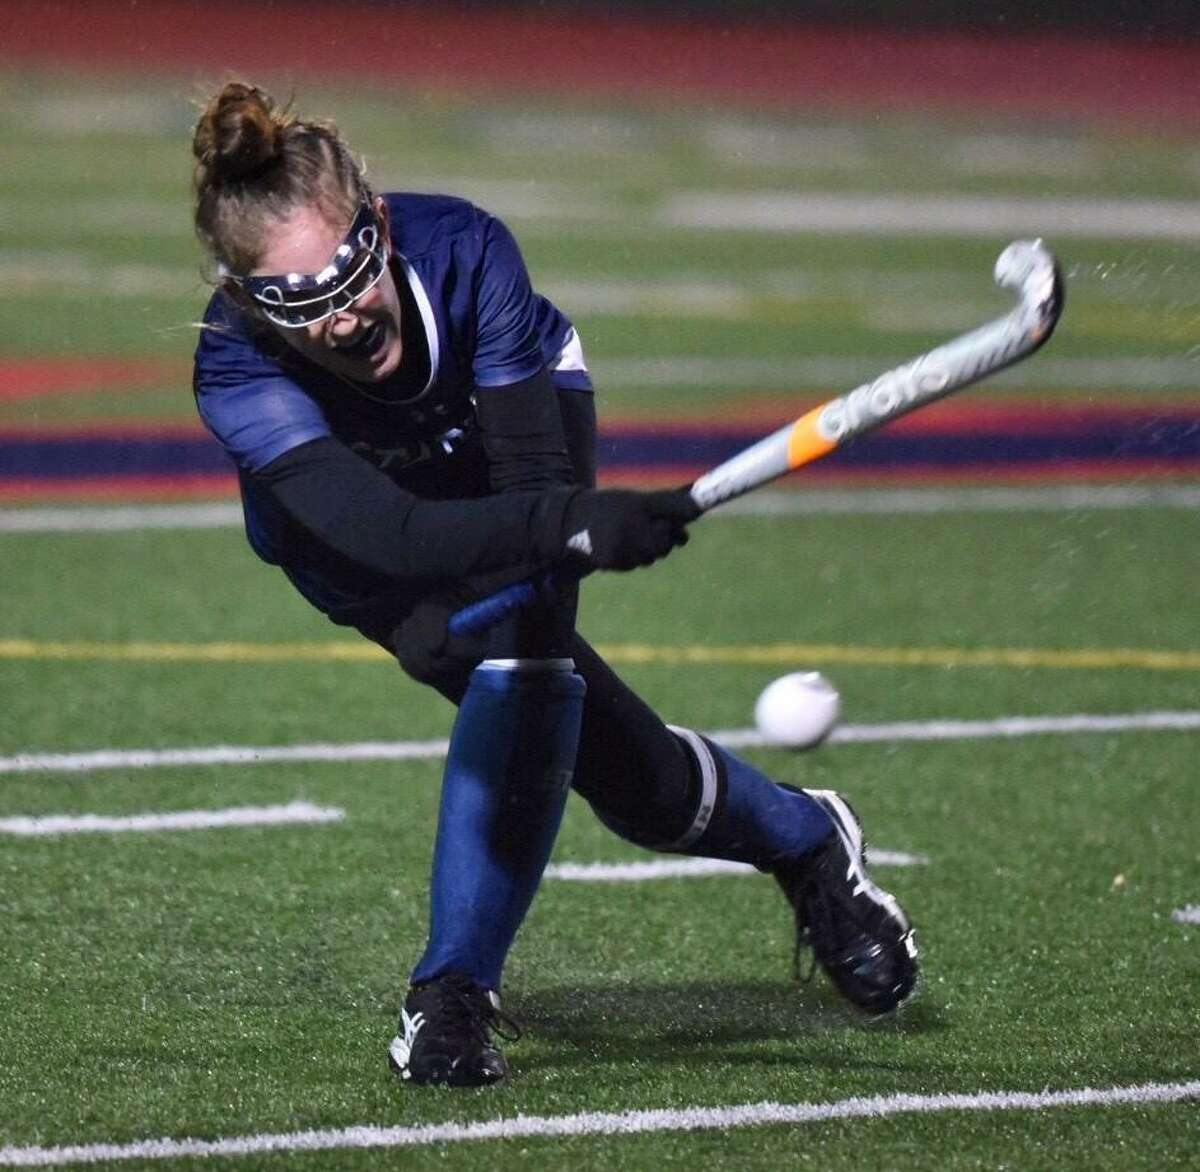 Staples' Grace Cooper sends the ball upfield during the FCIAC field hockey final between Staples and Darien at Brien McMahon on Thursday, Nov. 7, 2019. The game ended in a 0-0 tie after two overtimes, and the teams were declared co-champions.